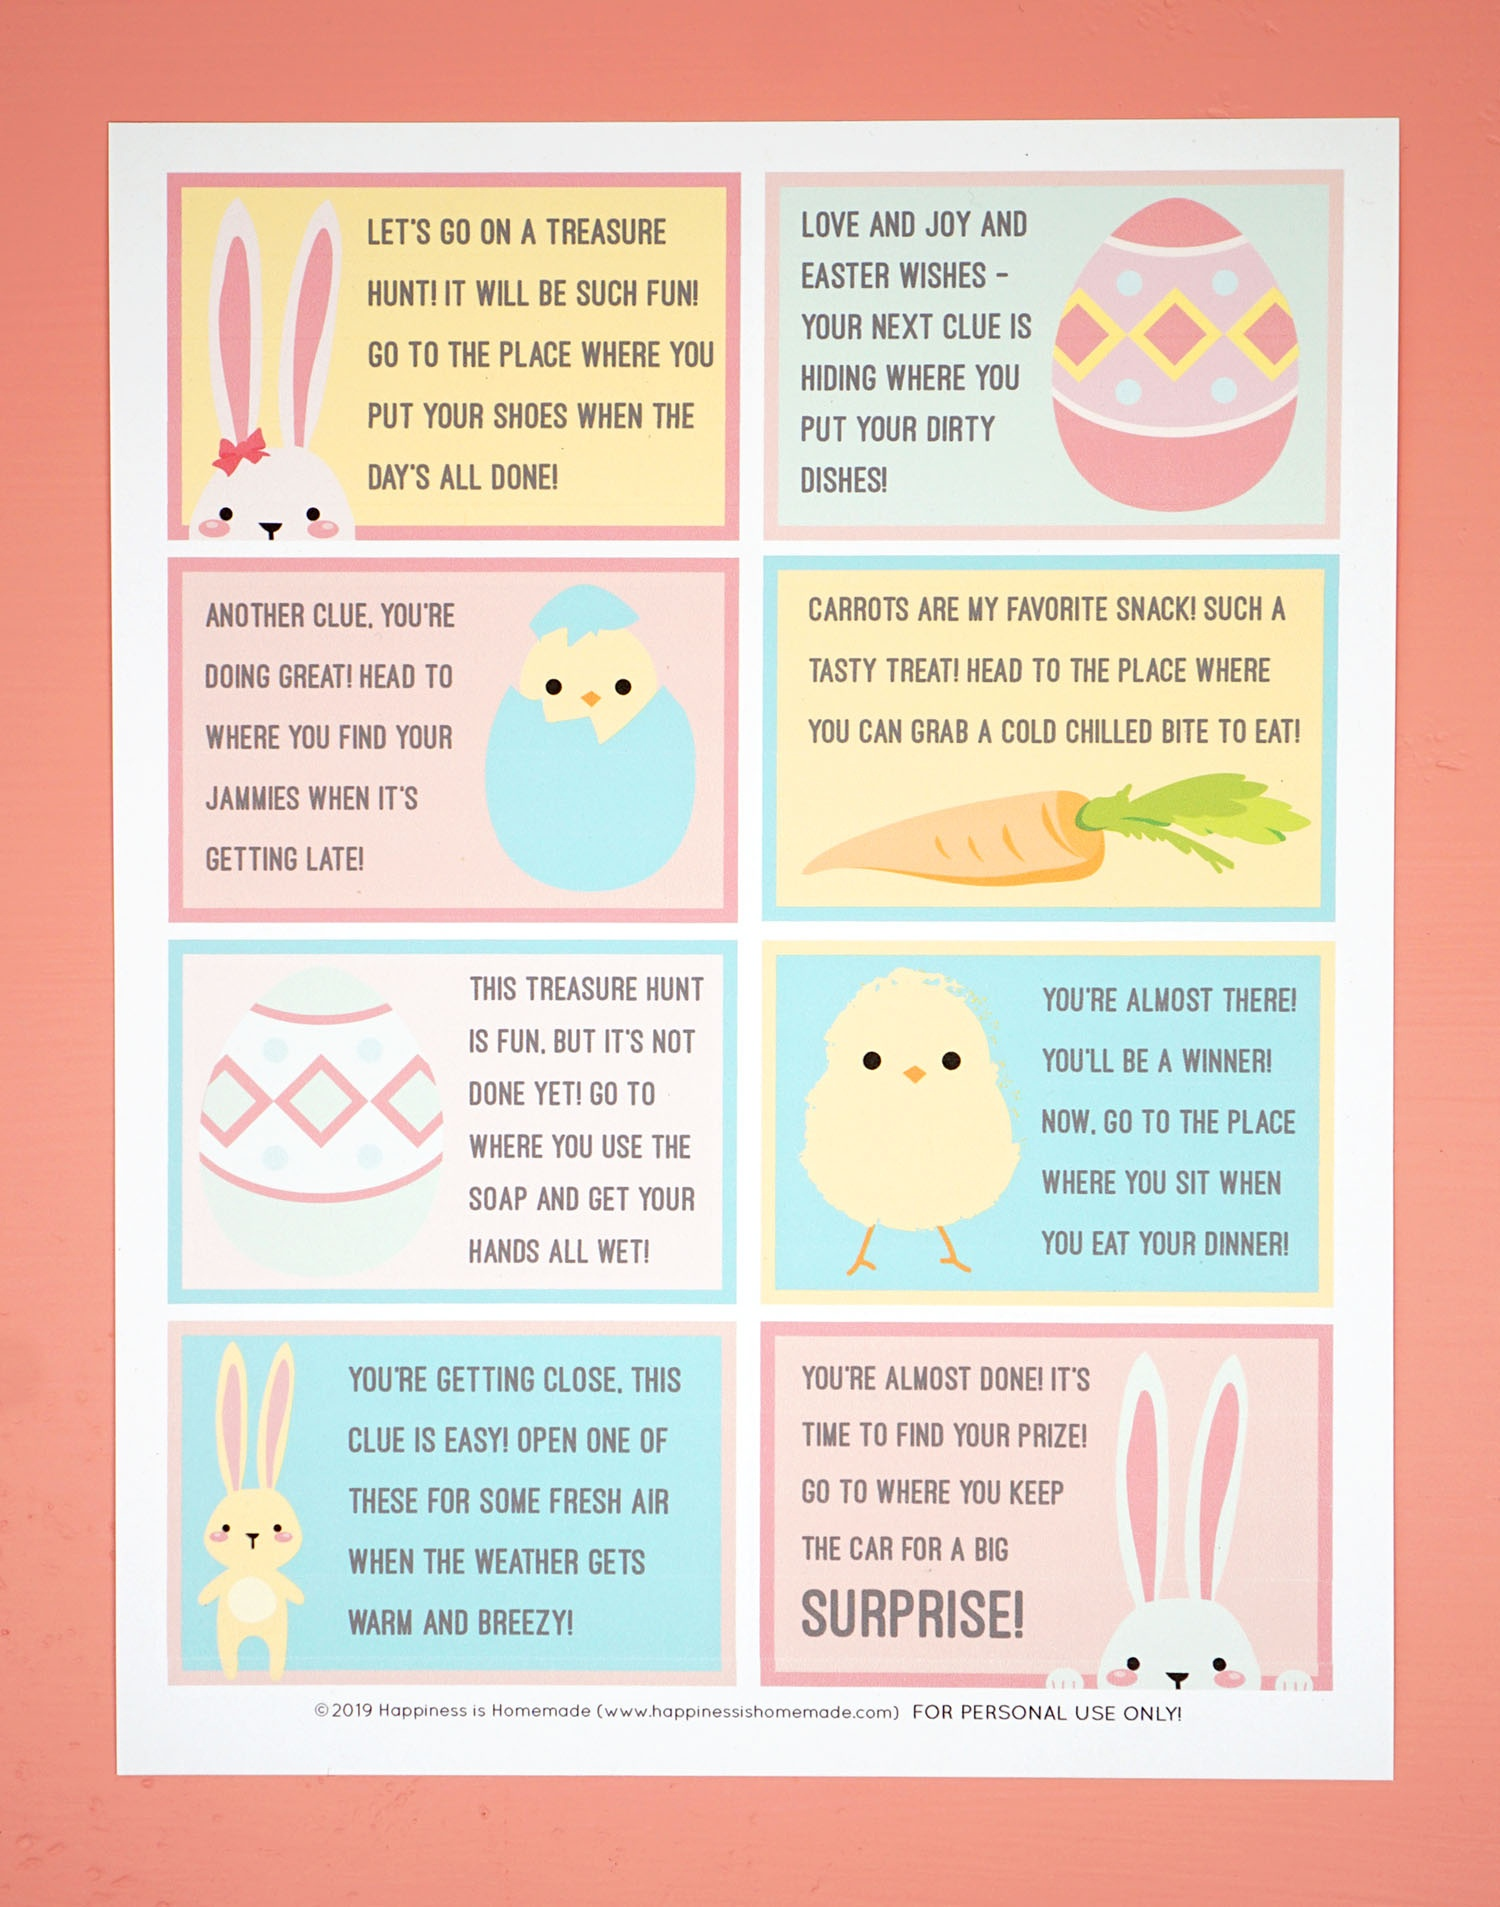 Easter Scavenger Hunt - Free Printable! - Happiness Is Homemade - Free Printable Easter Egg Hunt Riddles